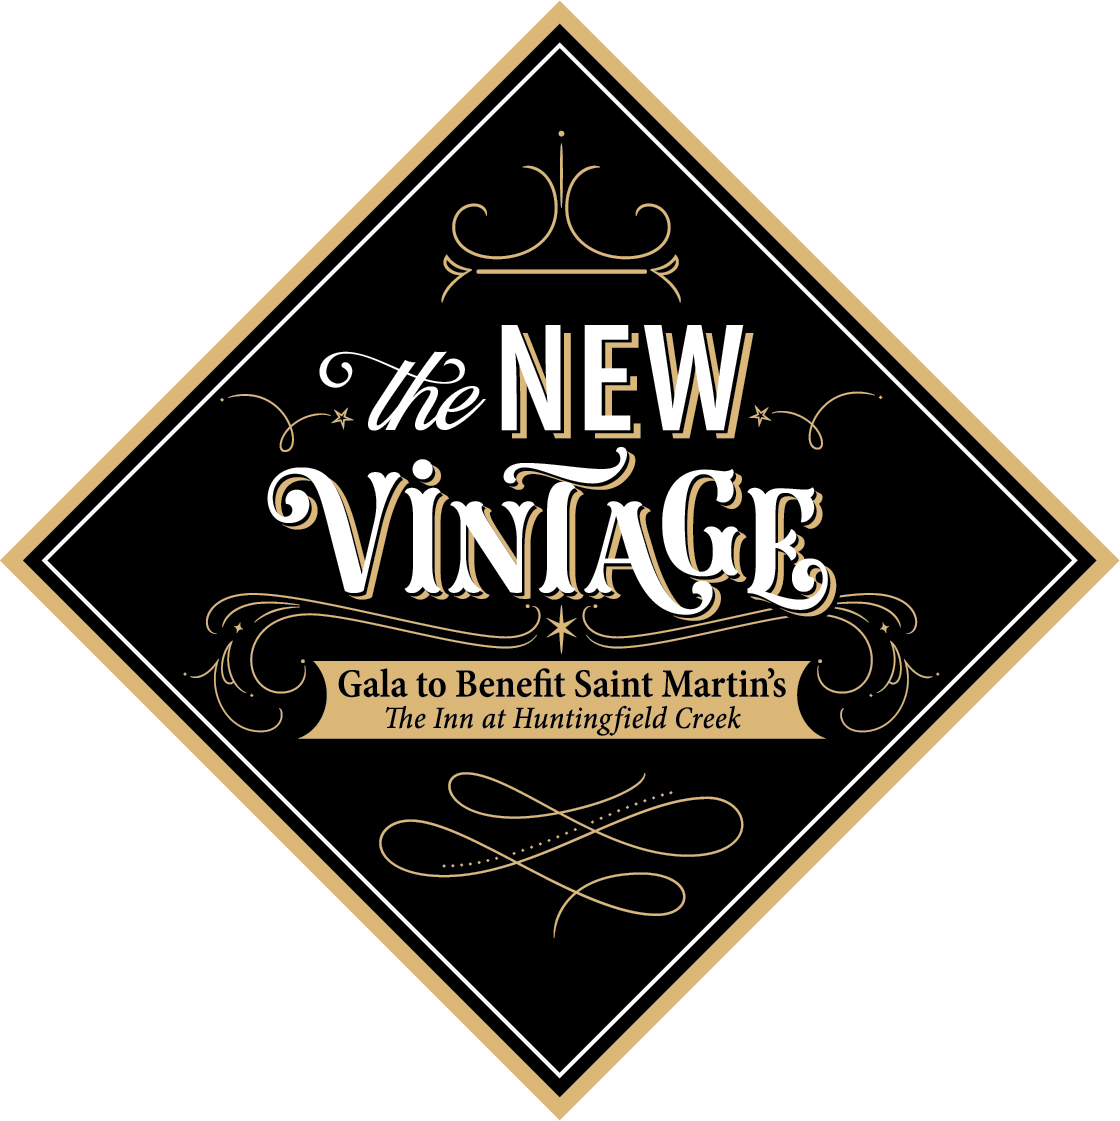 The New Vintage Gala to Benefit Saint Martin's